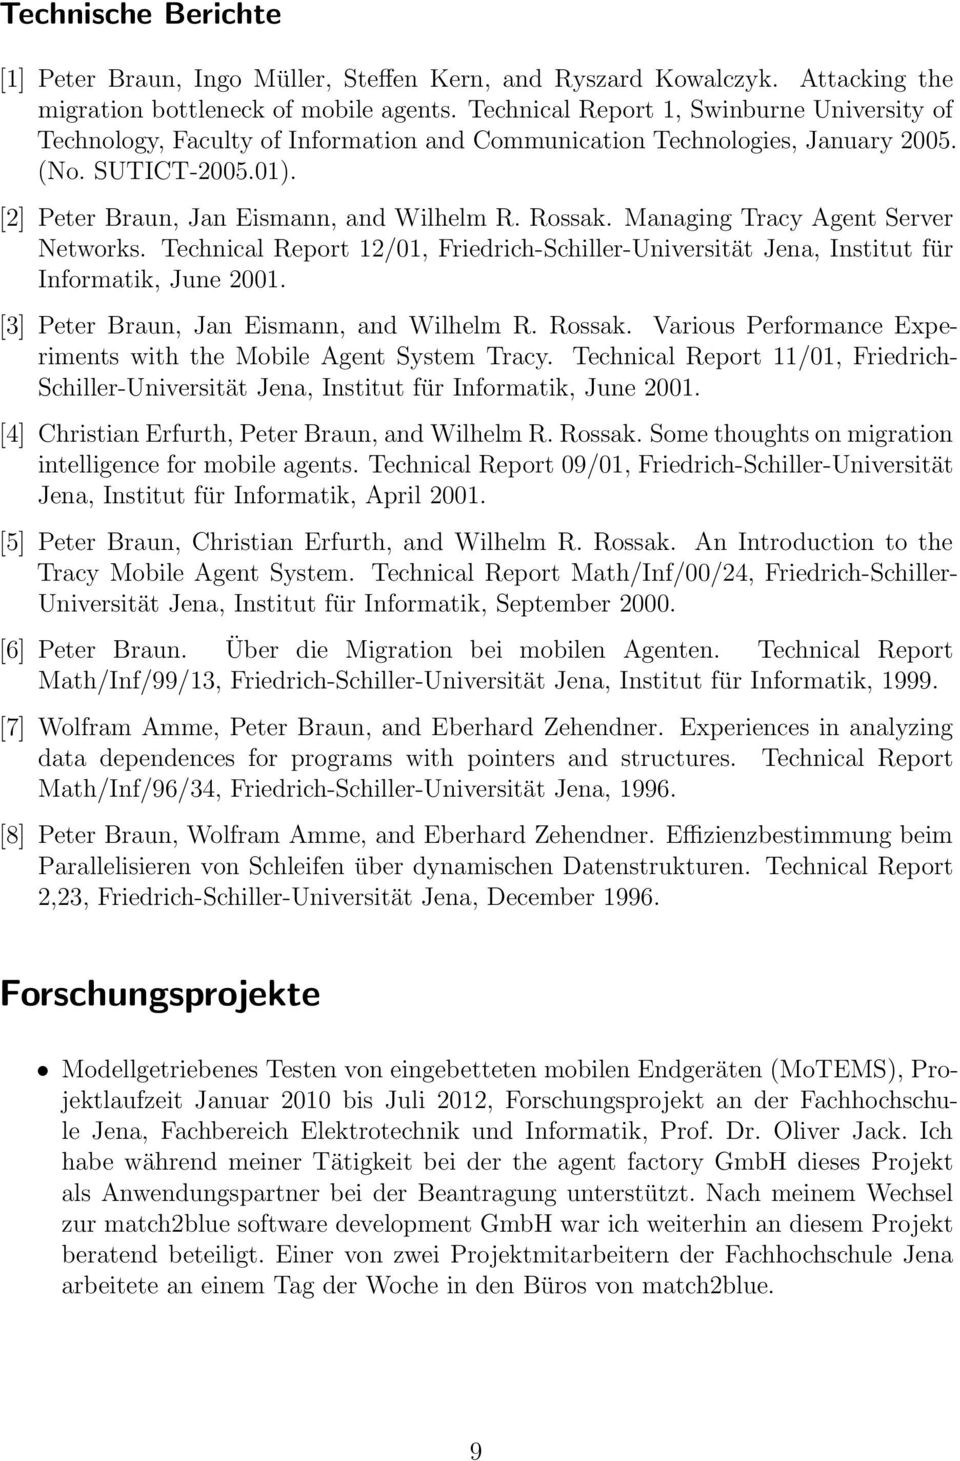 Managing Tracy Agent Server Networks. Technical Report 12/01, Friedrich-Schiller-Universität Jena, Institut für Informatik, June 2001. [3] Peter Braun, Jan Eismann, and Wilhelm R. Rossak.